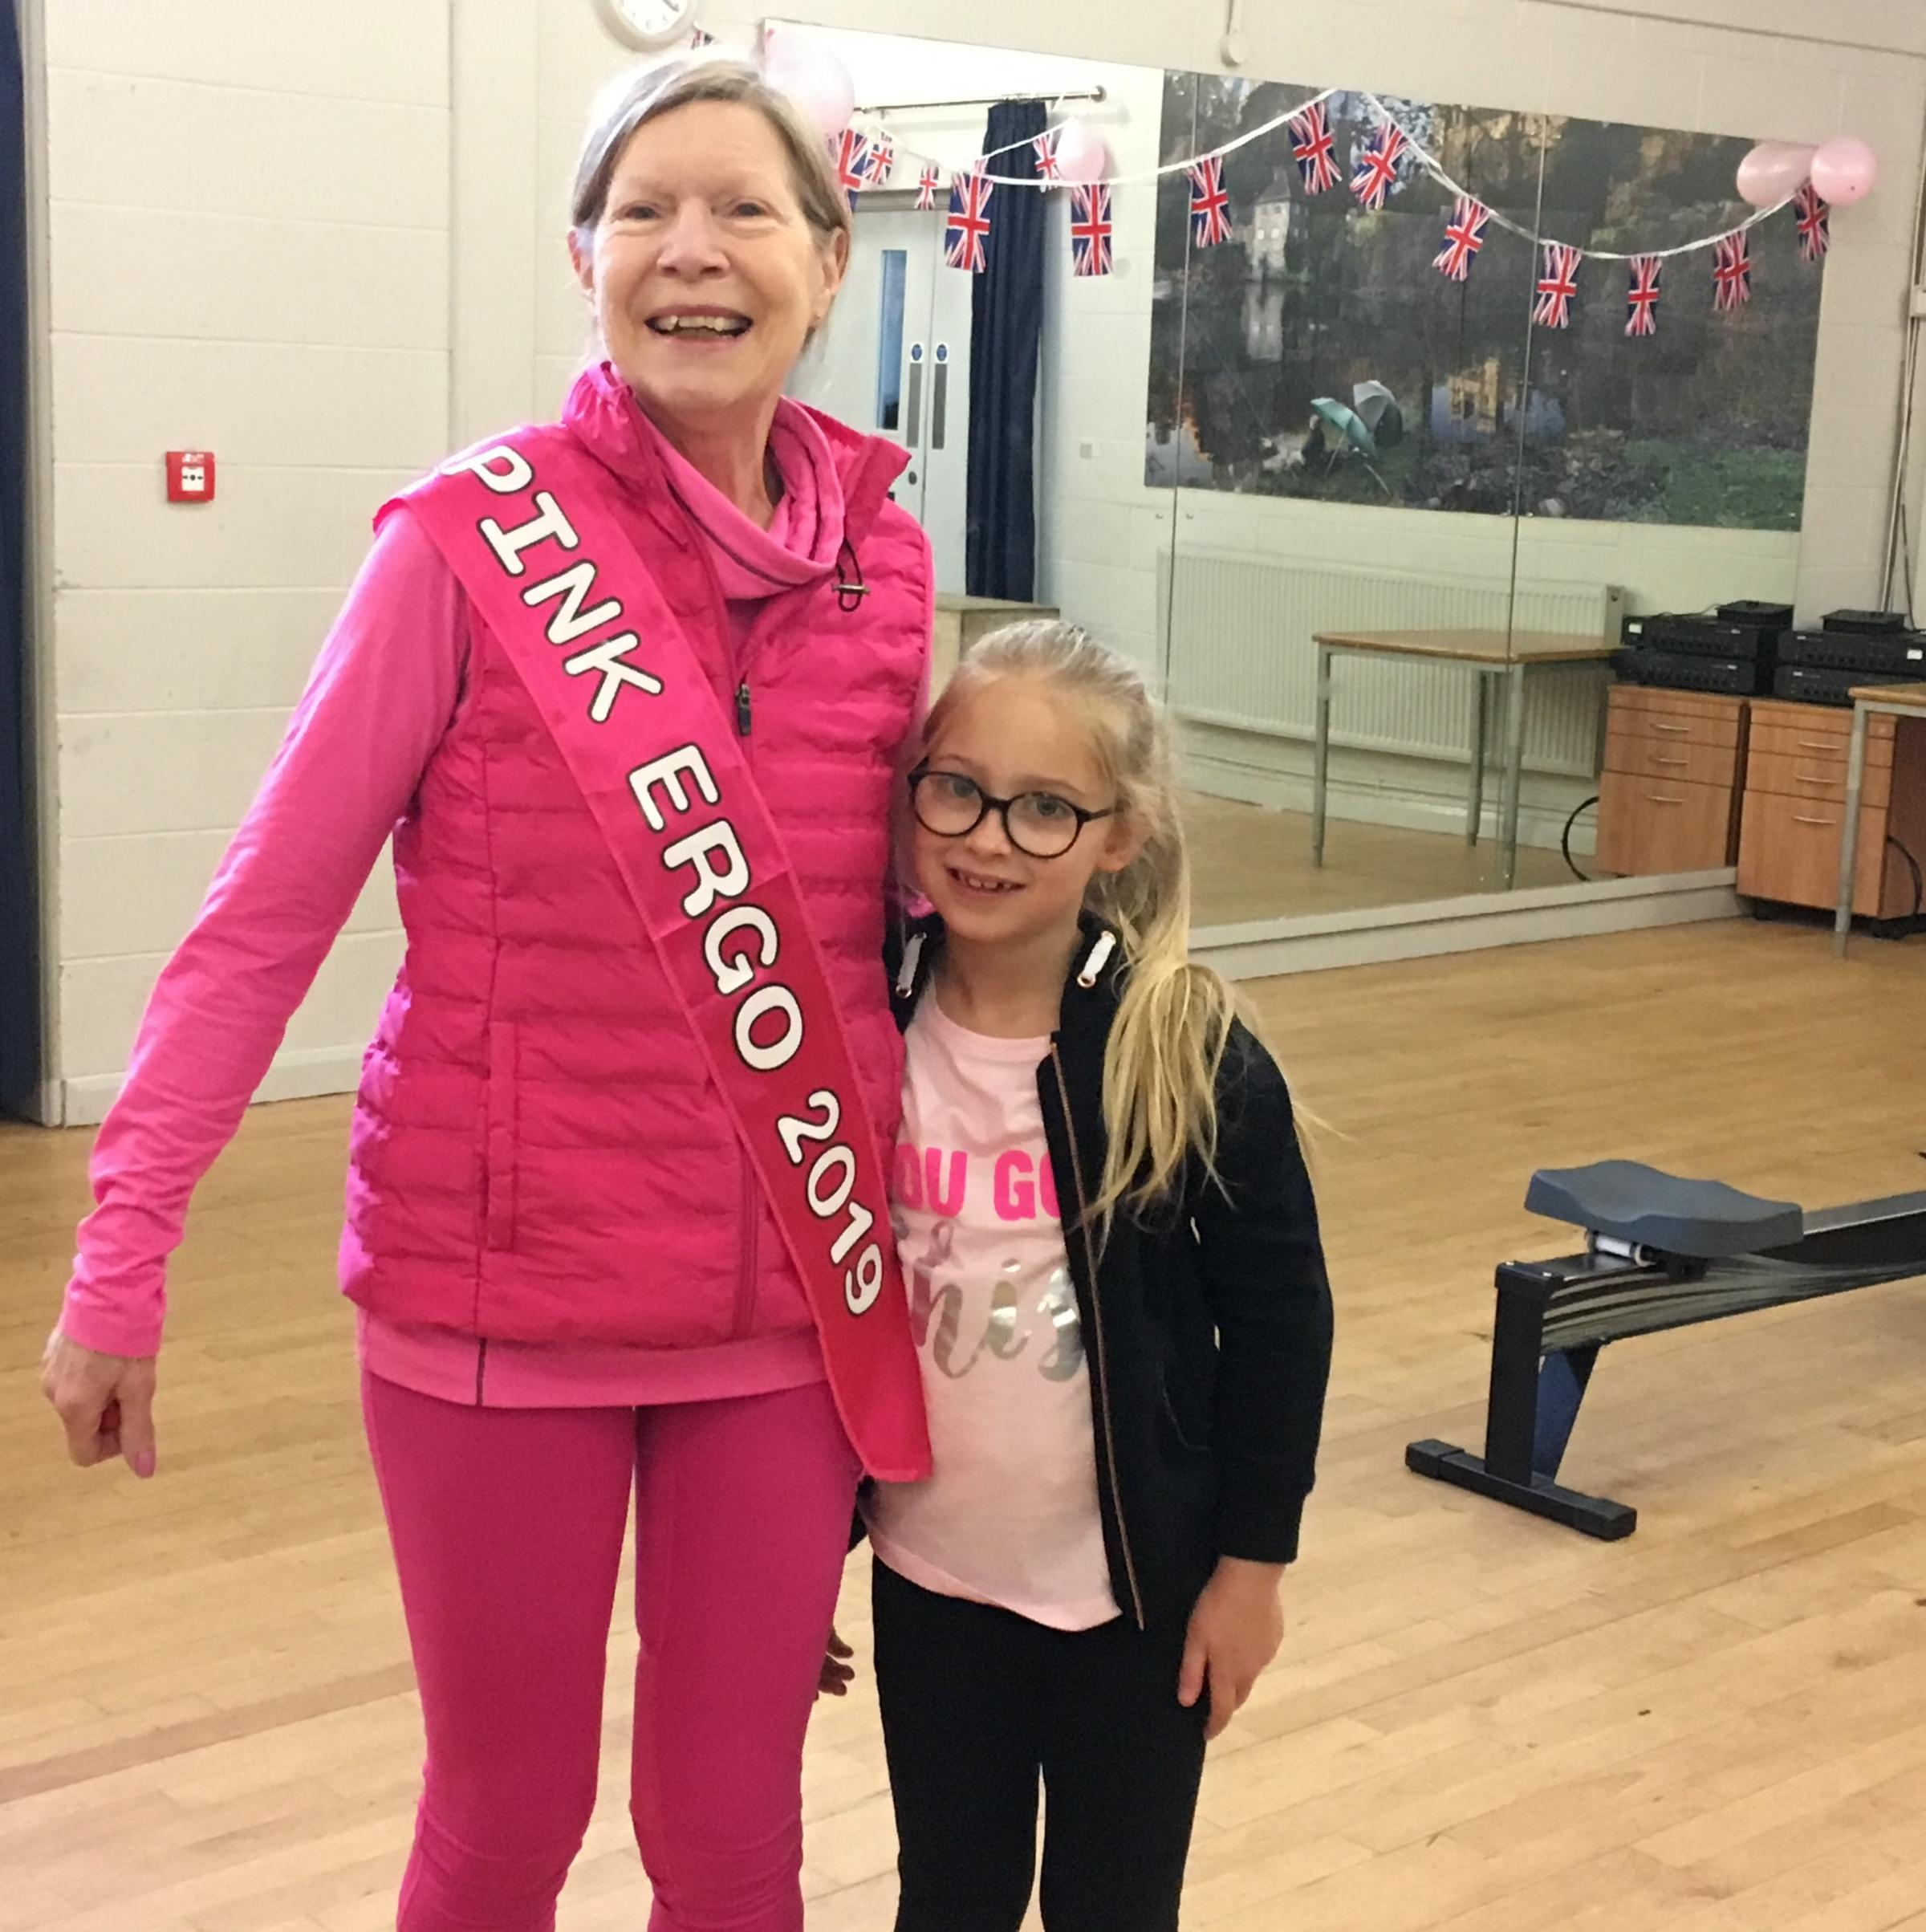 BIG SUPPORT: Hazel Stainforth and her youngest supporter Sophia, who both took part in the 100km rowing challenge to raise money for breast cancer charities